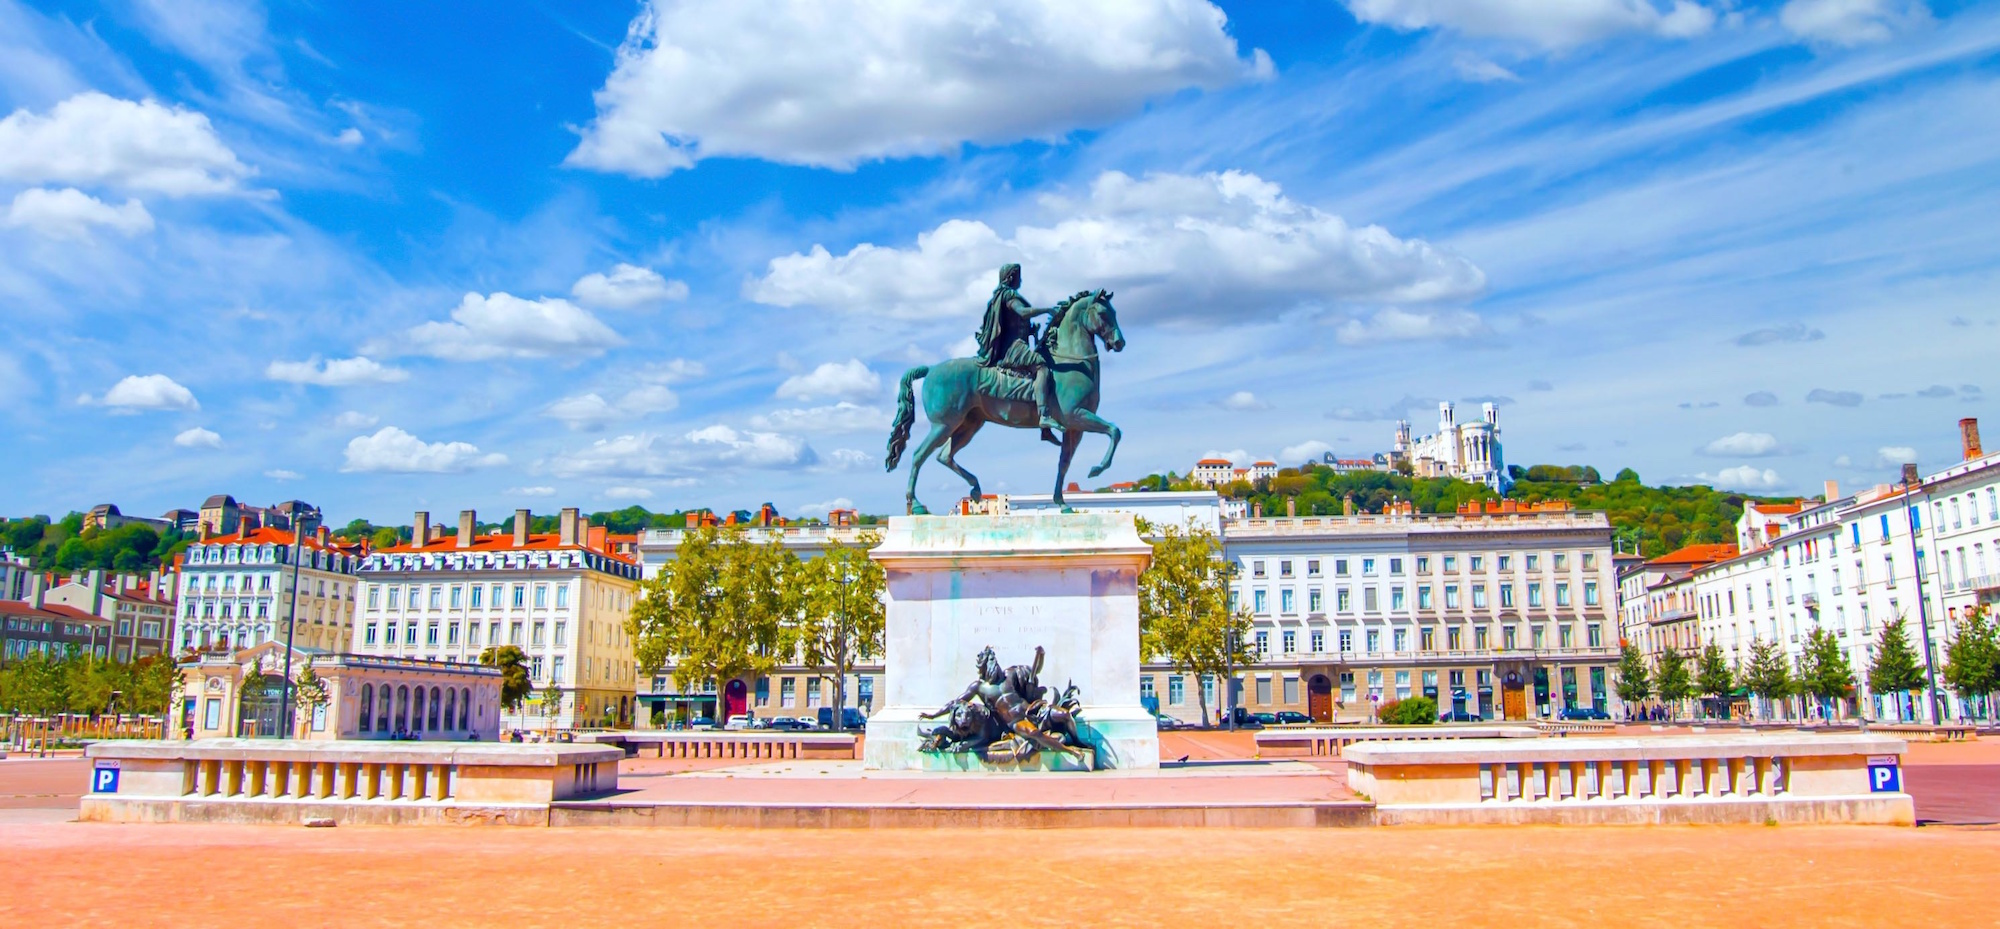 Place Bellecour à Lyon, France